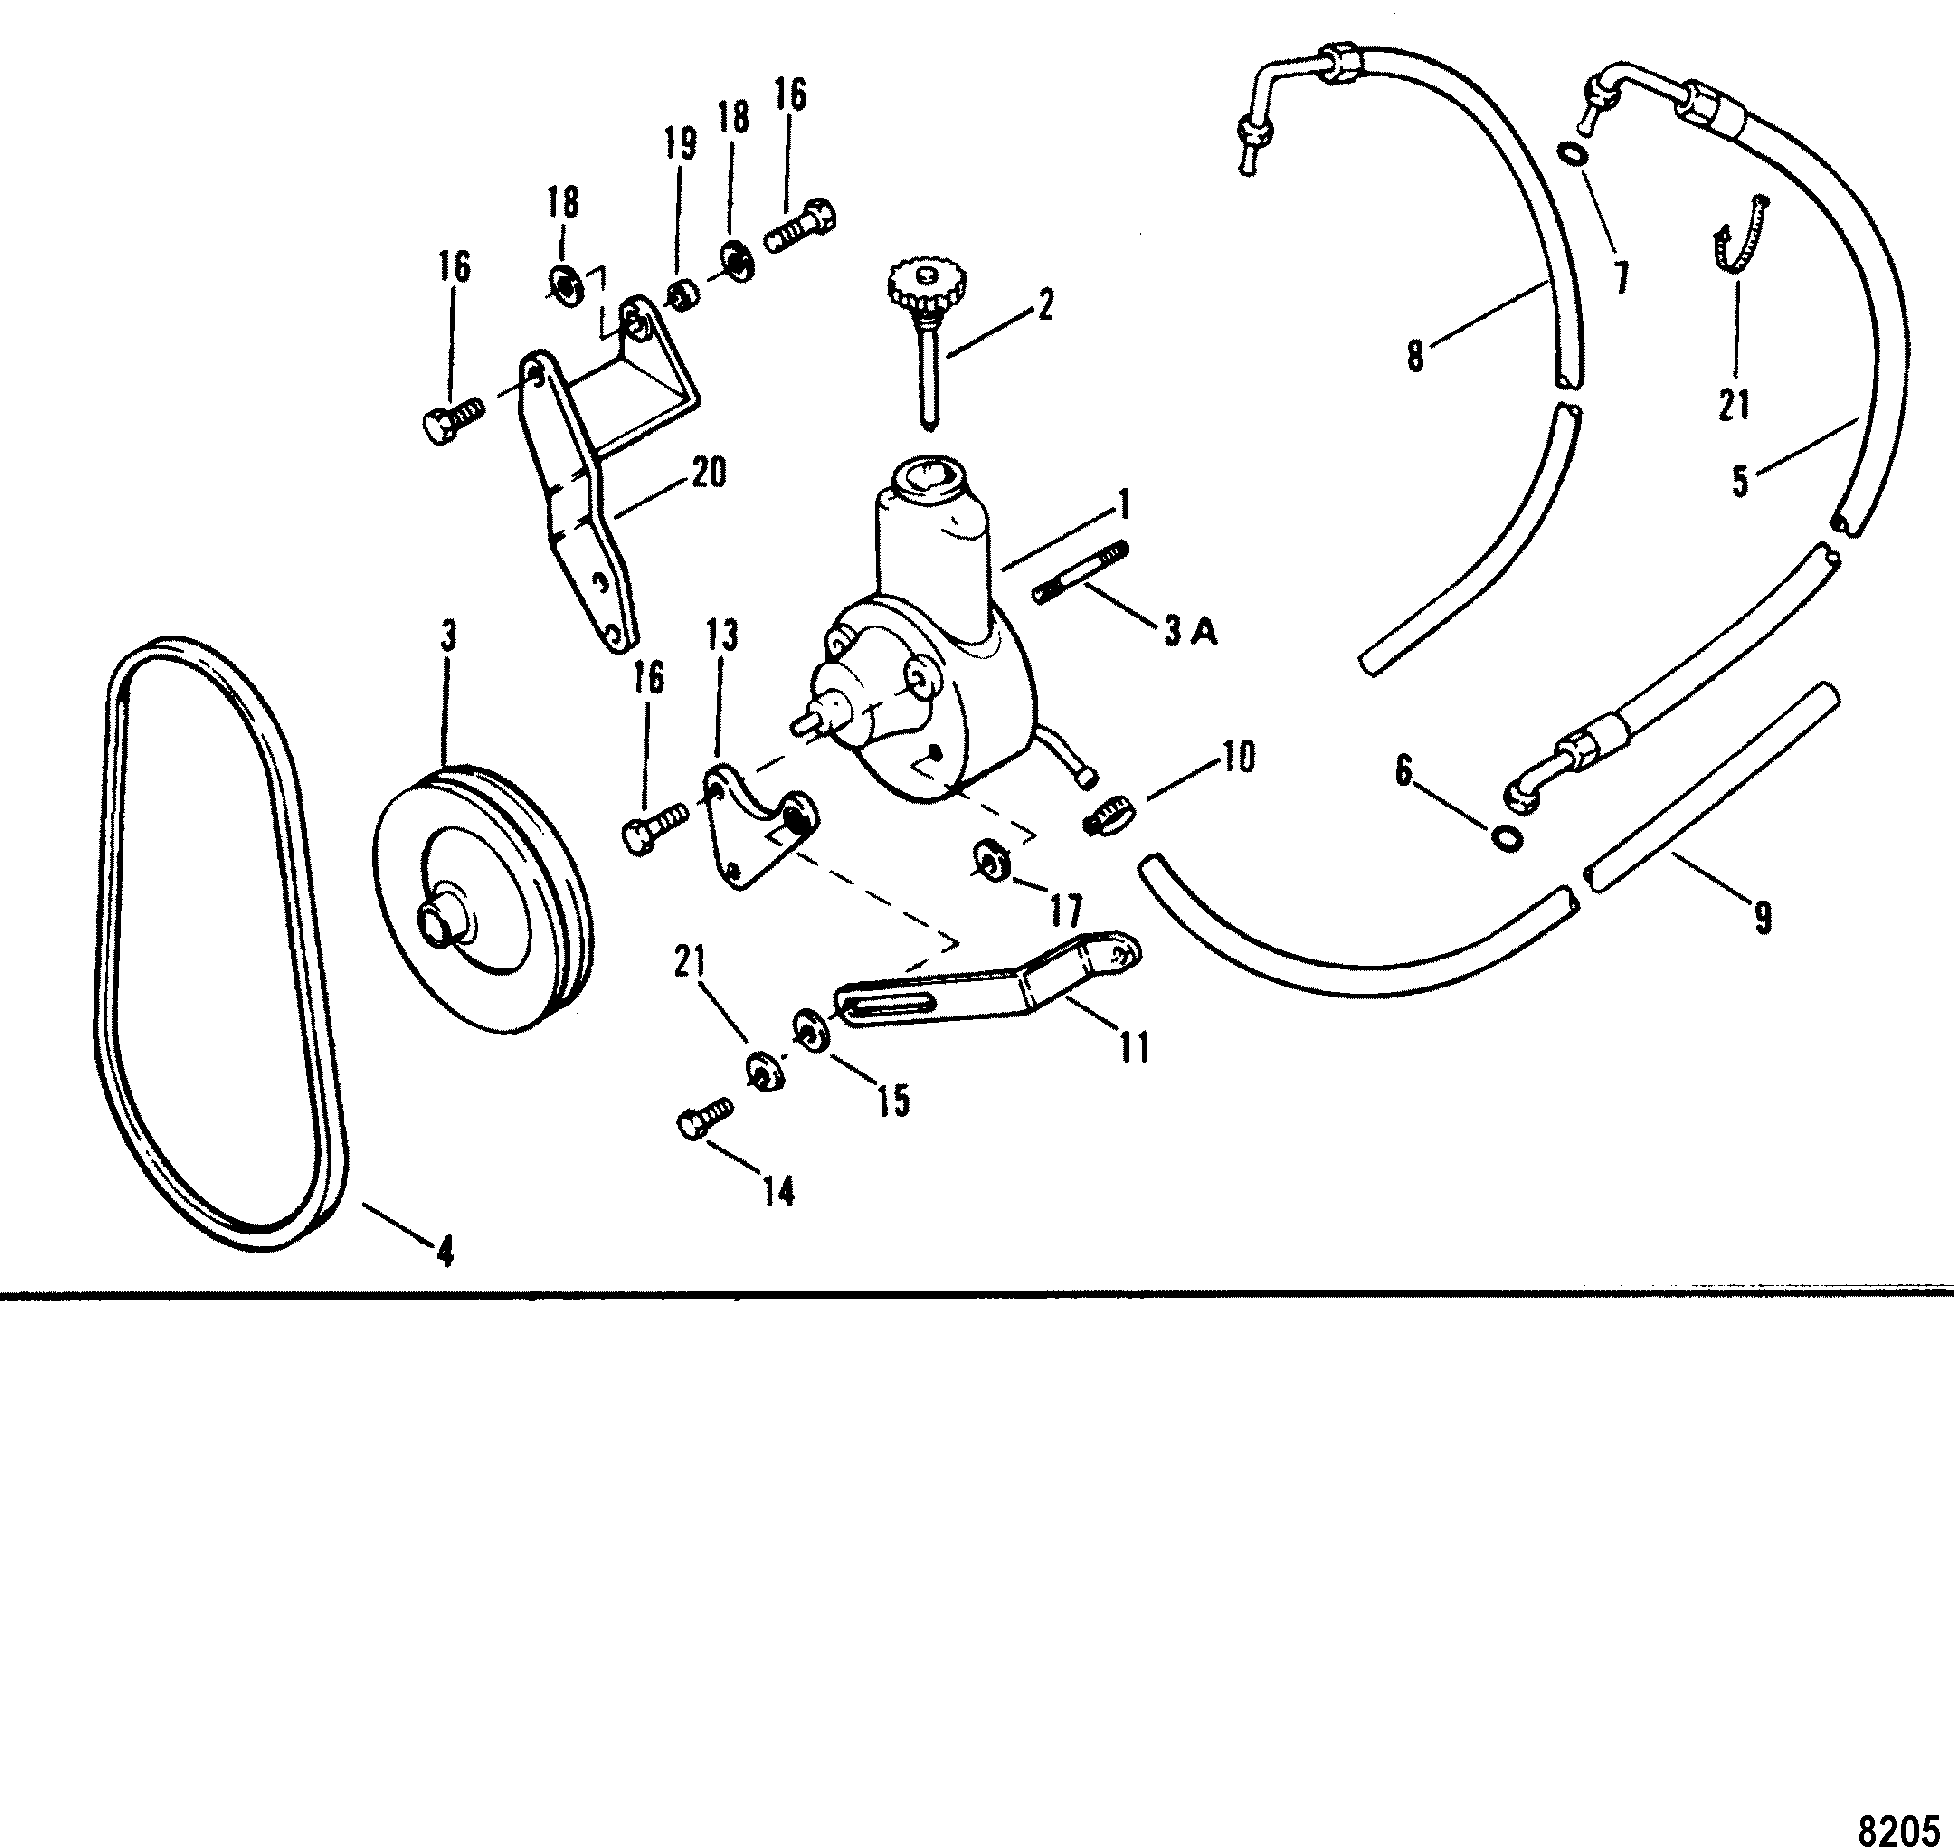 alpha one sterndrive parts diagram shovelhead points wiring power steering pump assembly for mercruiser 3 0l lx